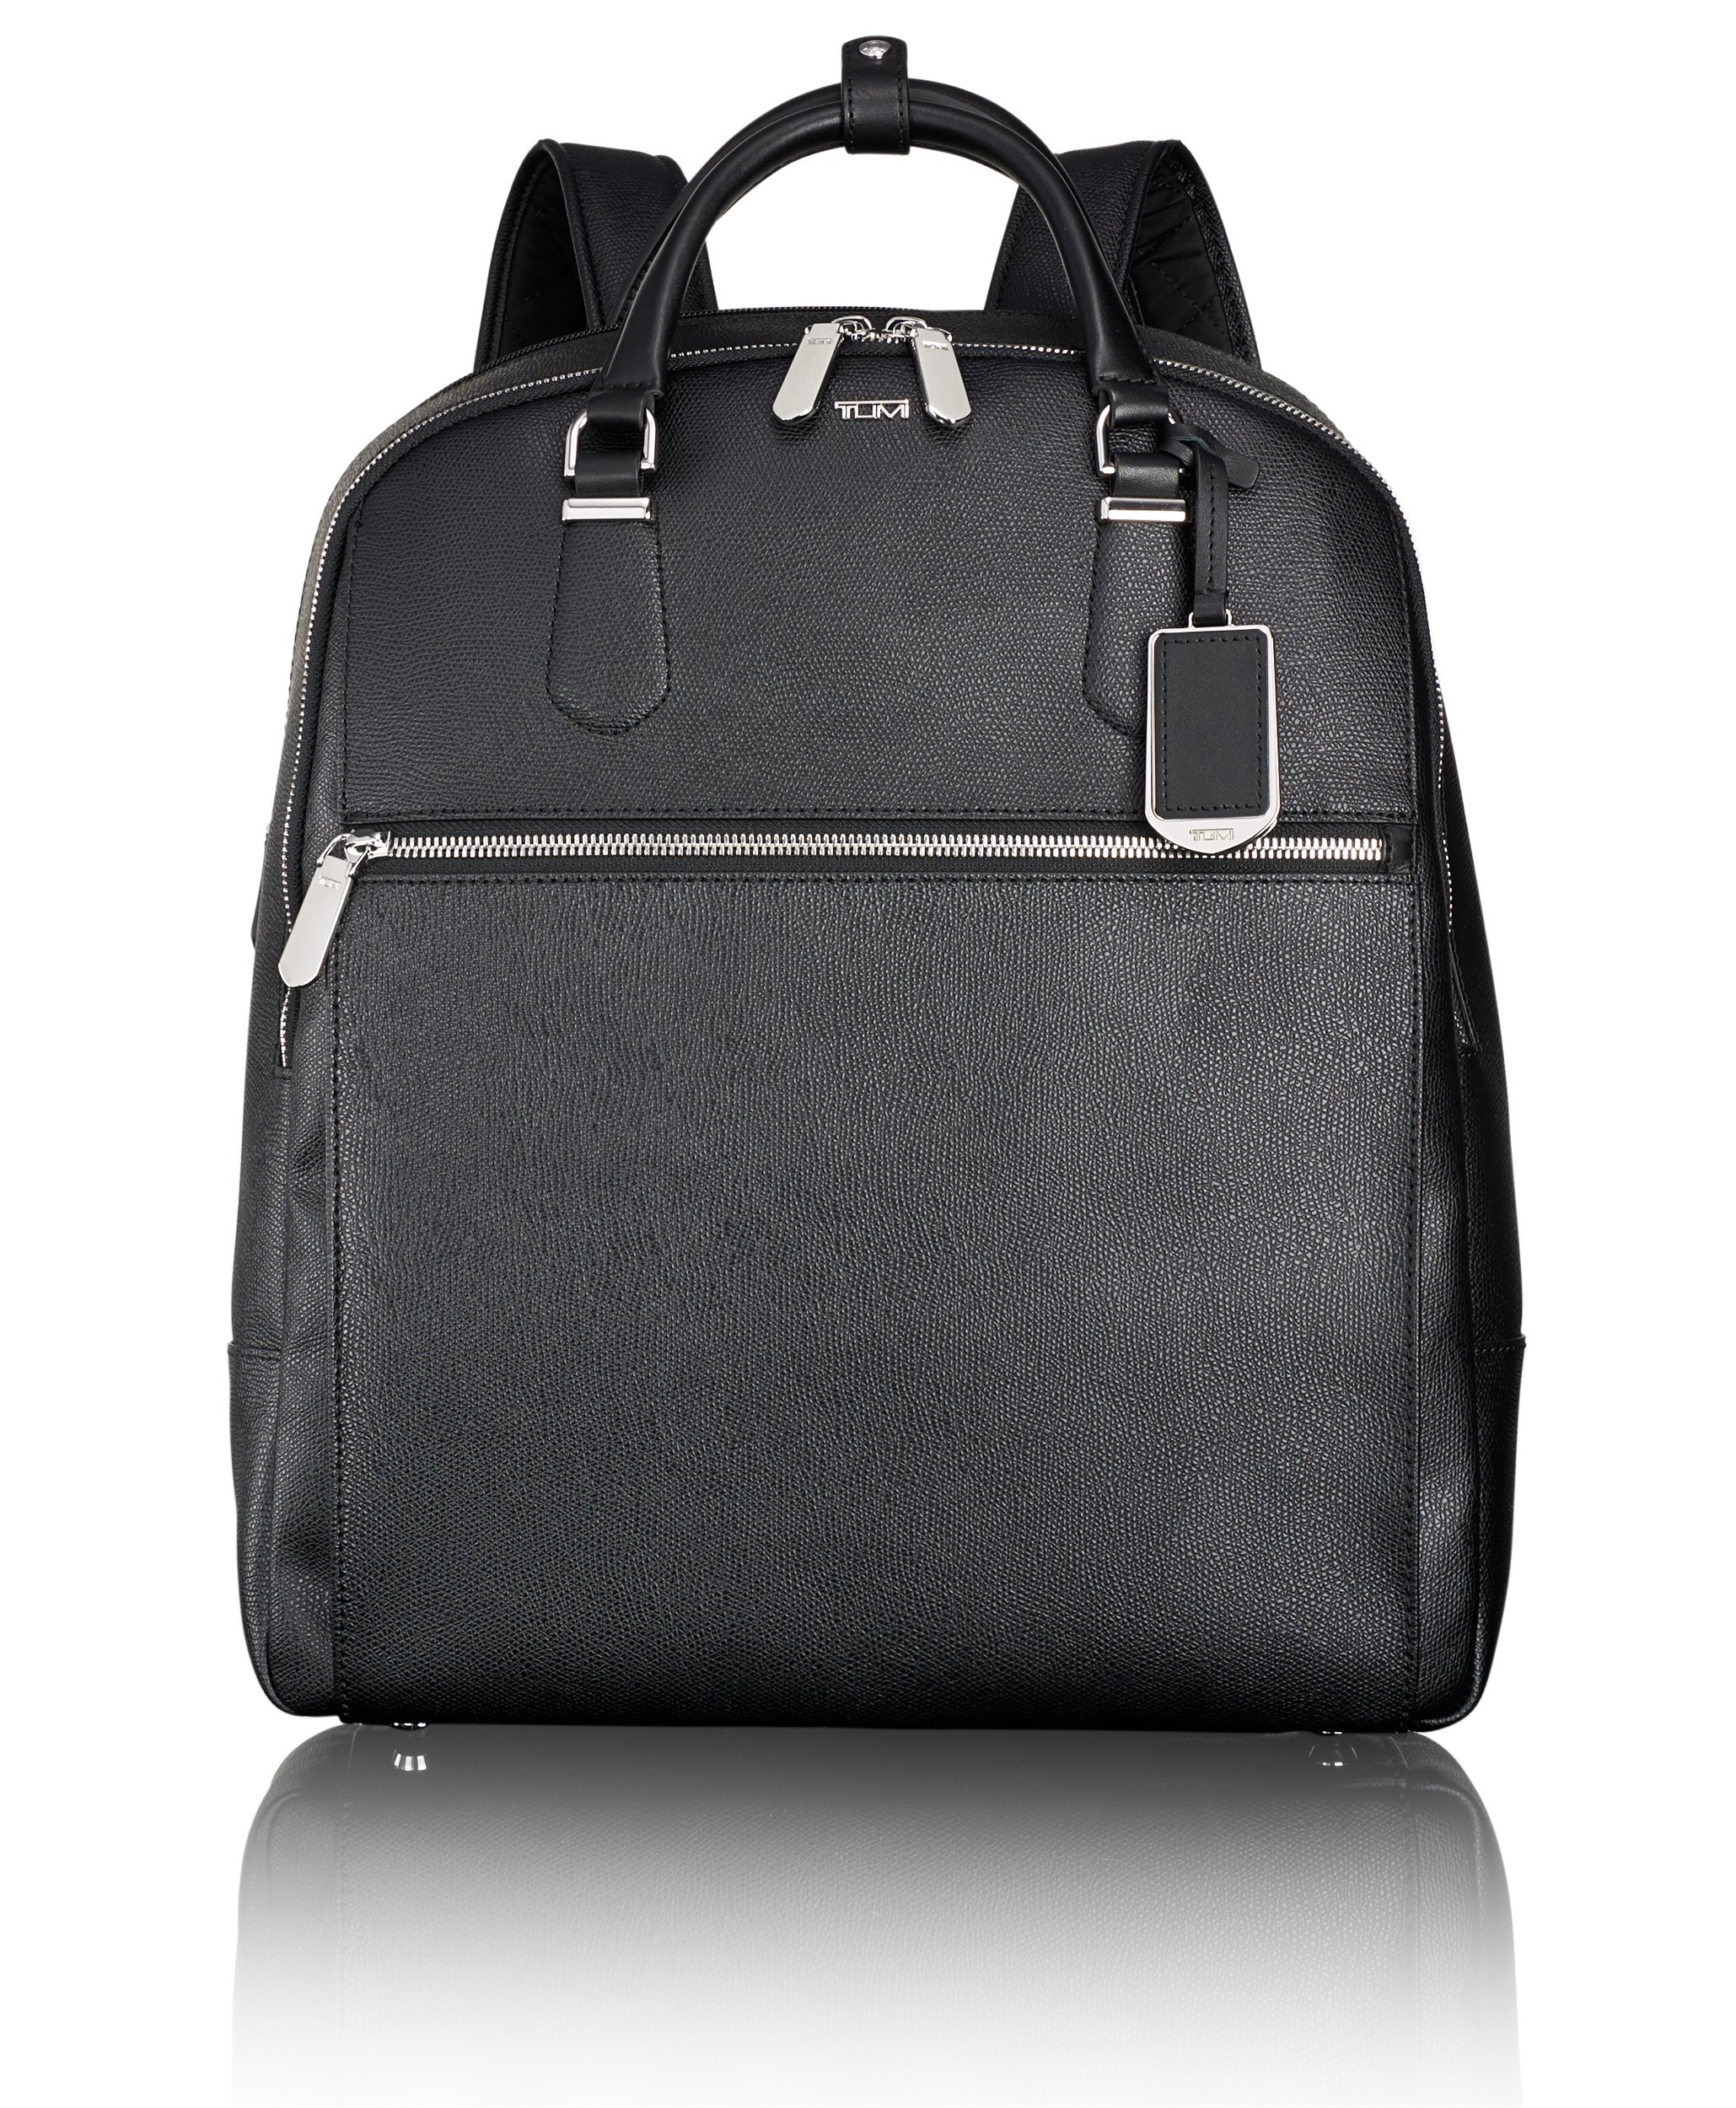 Tumi Sinclair Odell Convertible Backpack, Black